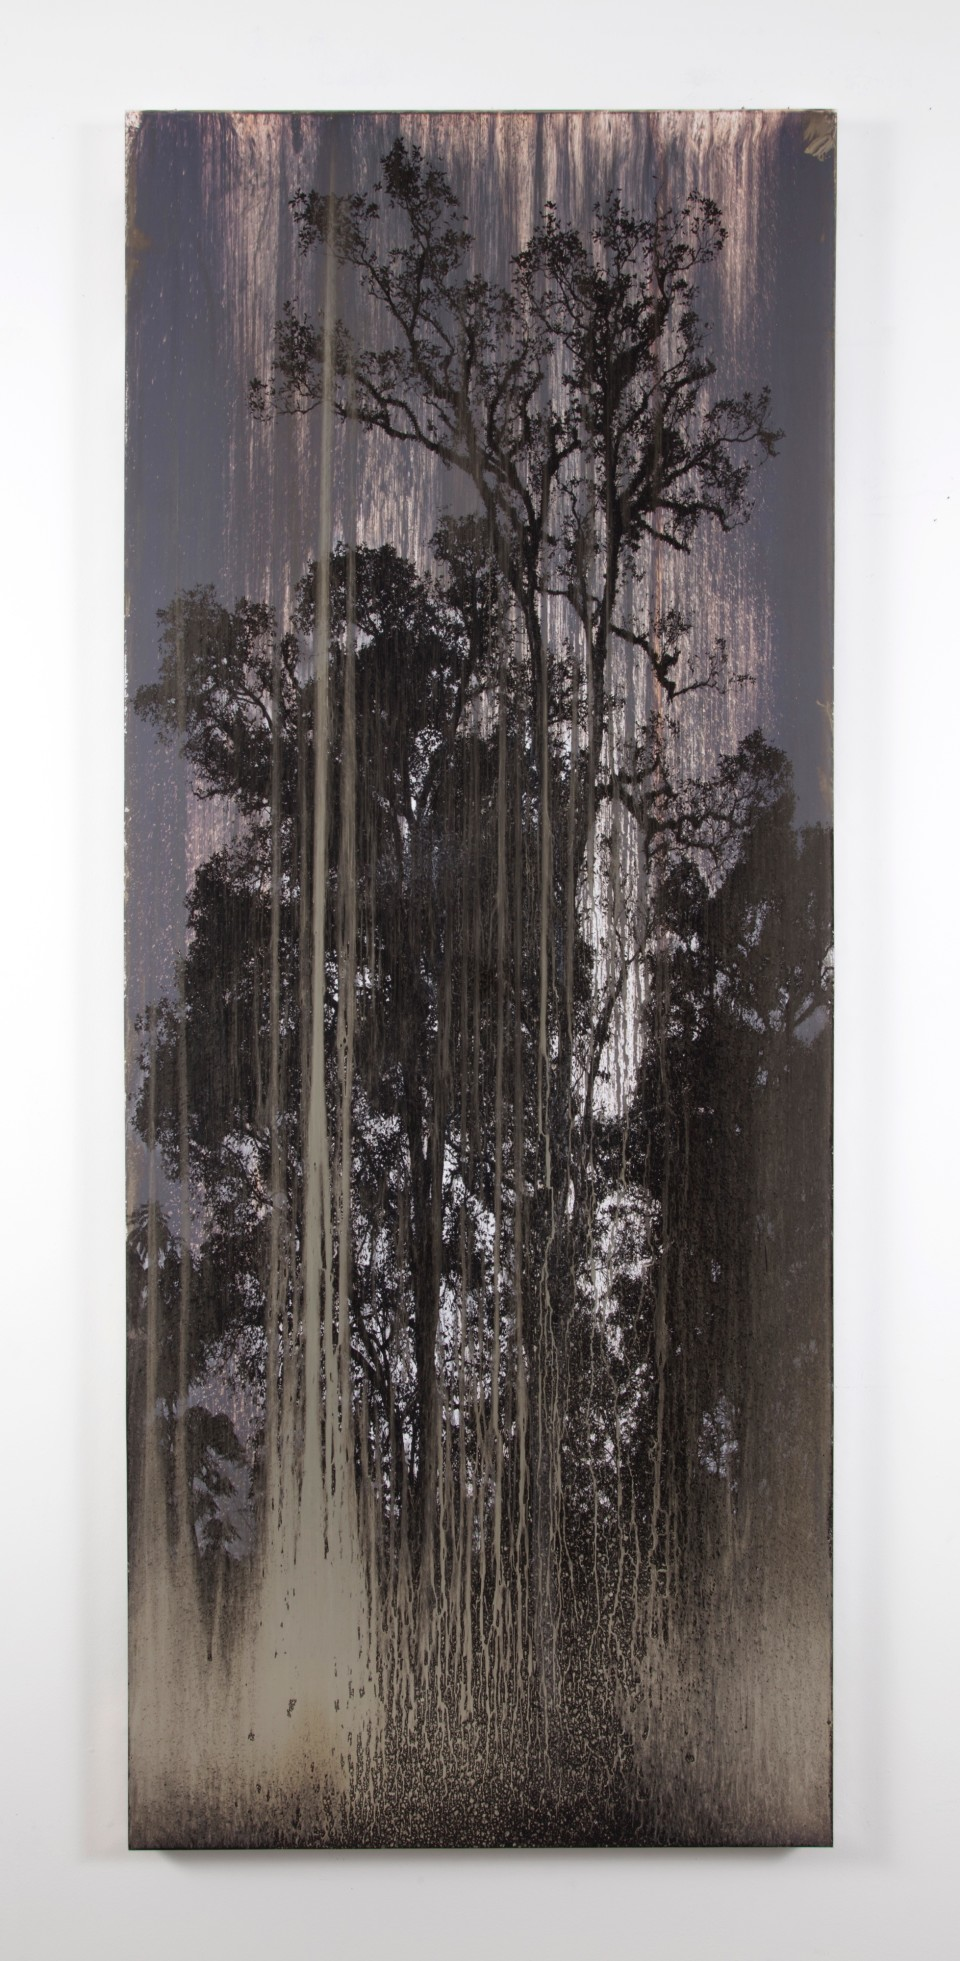 Artwork: Matthew Brandt  AgXB751B, 2019  signed, titled and dated verso  silver on silver gelatin print (mounted on aluminum)  75 1/2 x 30 1/2 inches (181.6 x 104.8 cm)